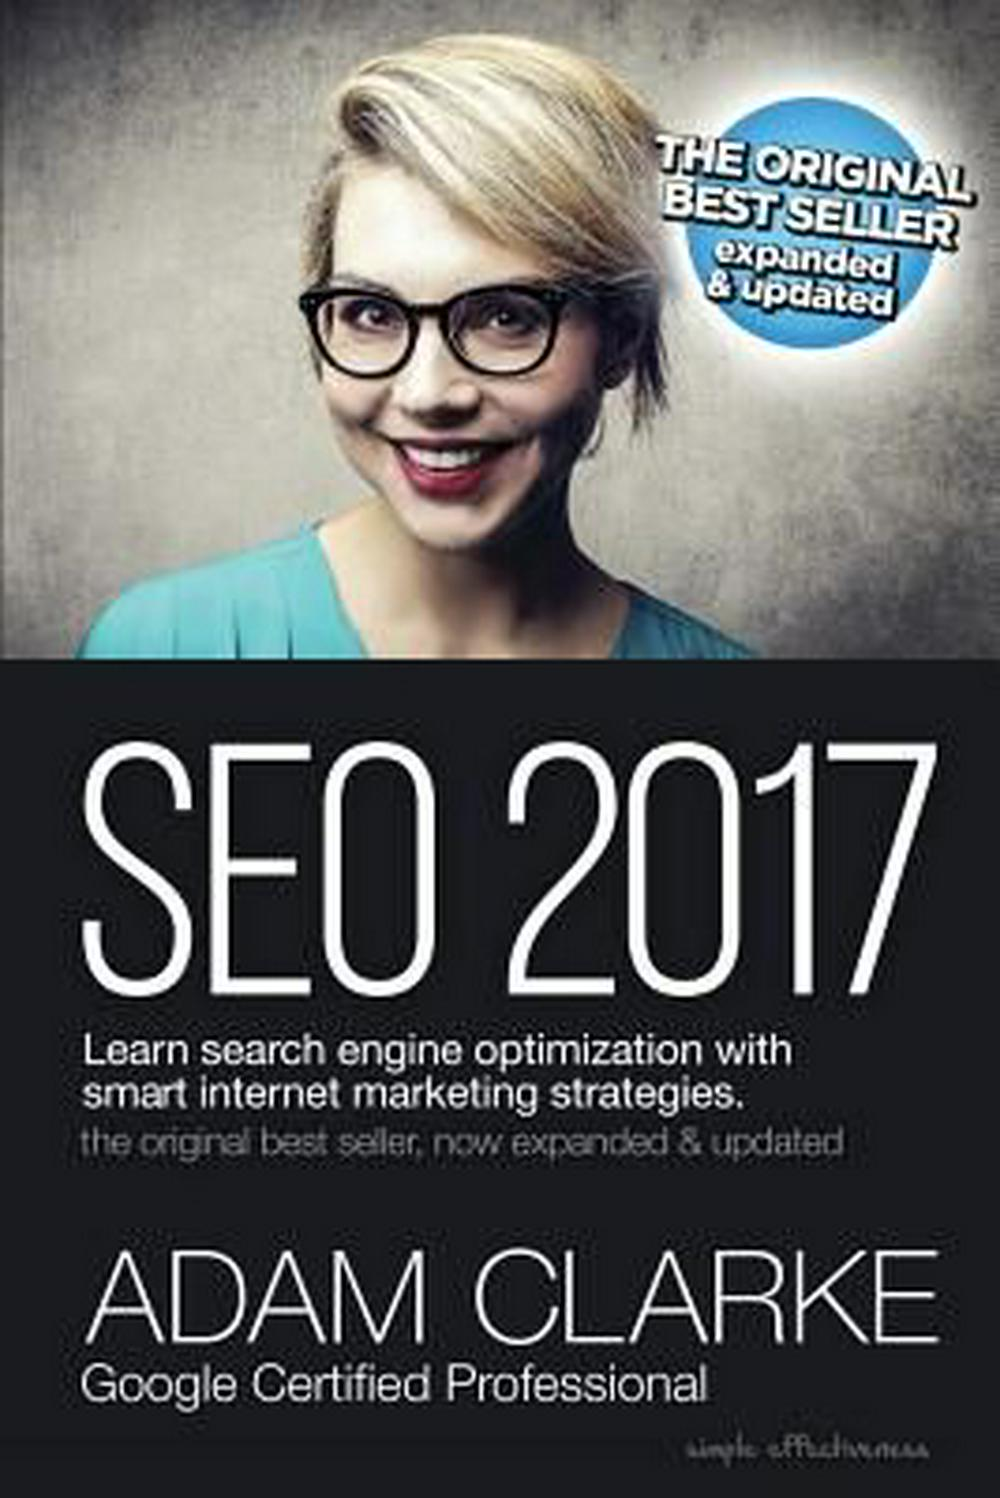 SEO 2017 Learn Search Engine Optimization With Smart Internet Marketing Strateg: Learn SEO with smart internet marketing strategies by Adam Clarke, ISBN: 9781539151142